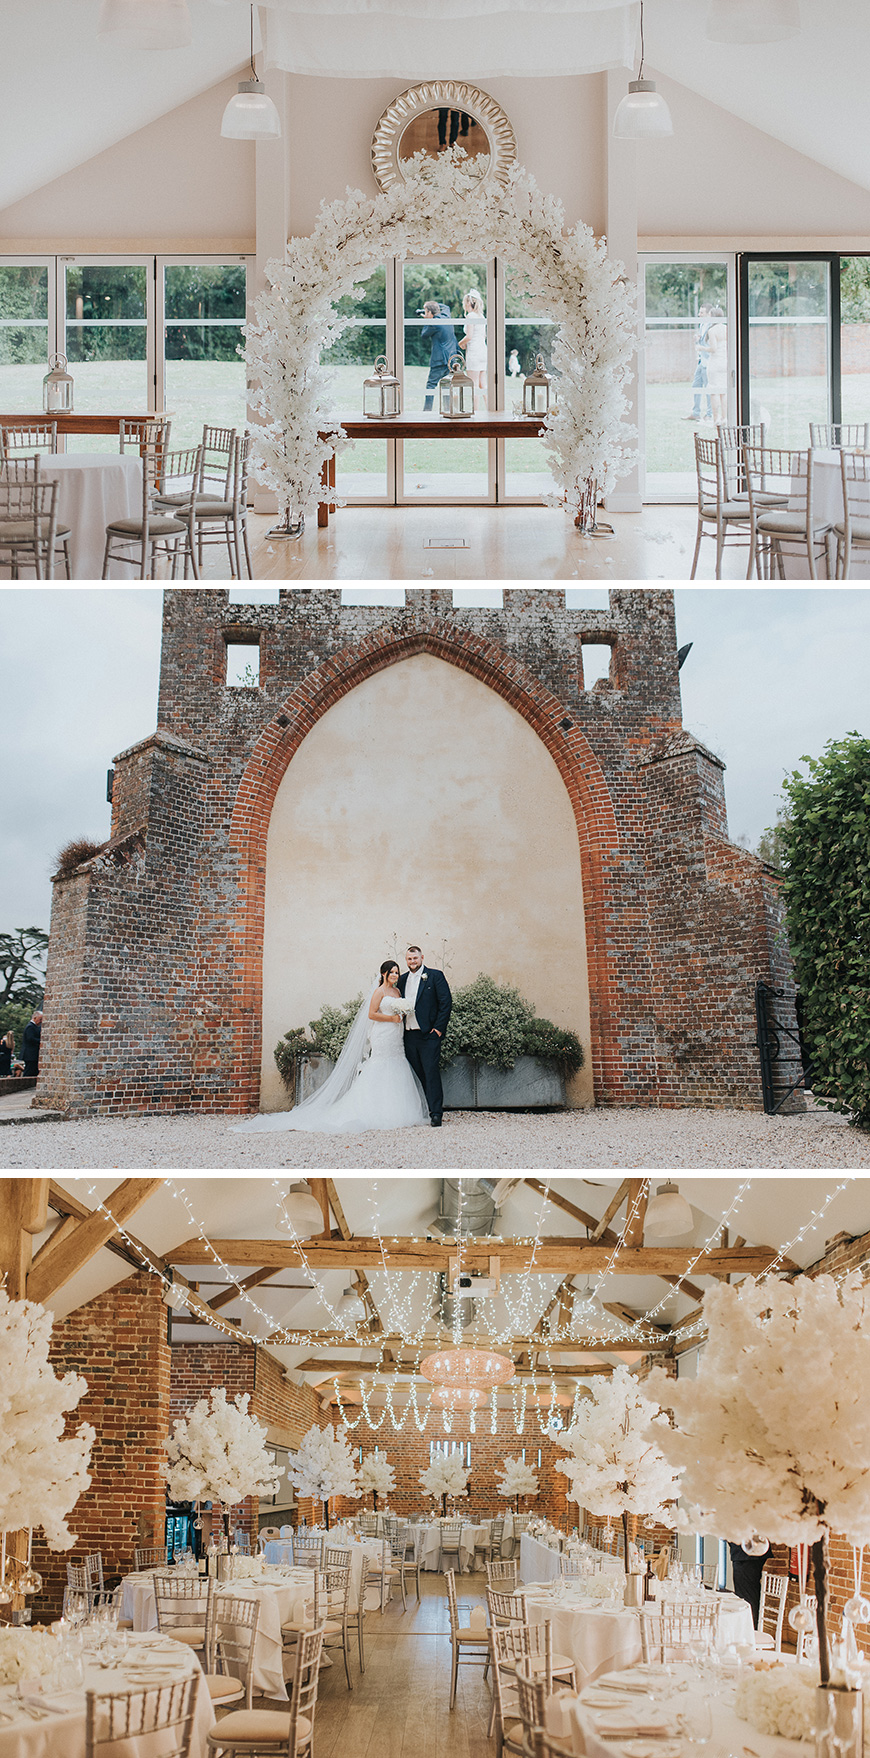 Real Wedding - Kirsty and Andrew's Magical Summer Wedding At Wasing Park | CHWV